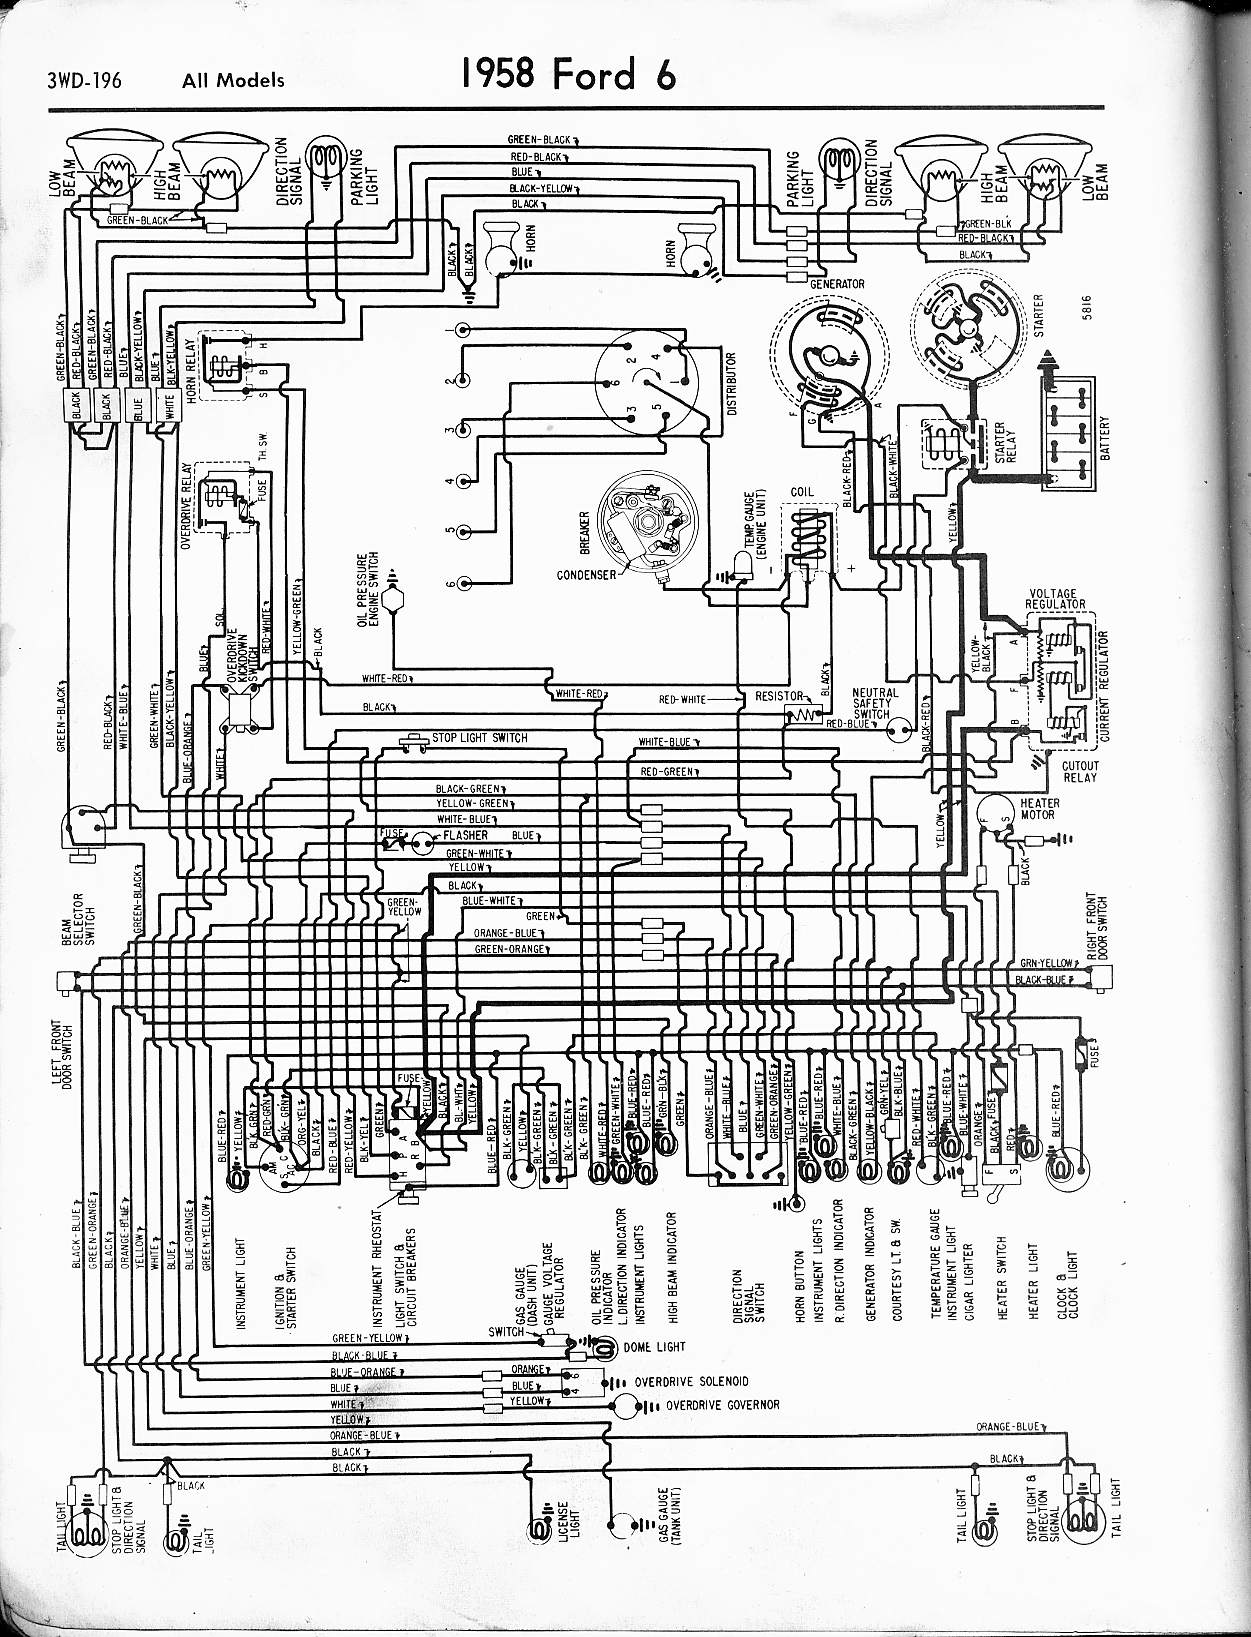 1965 Ford Mustang Fuel System Diagram Content Resource Of Wiring 88 Gt 1958 Schematics Rh Mychampagnedaze Com 2002 Official 302 Engine